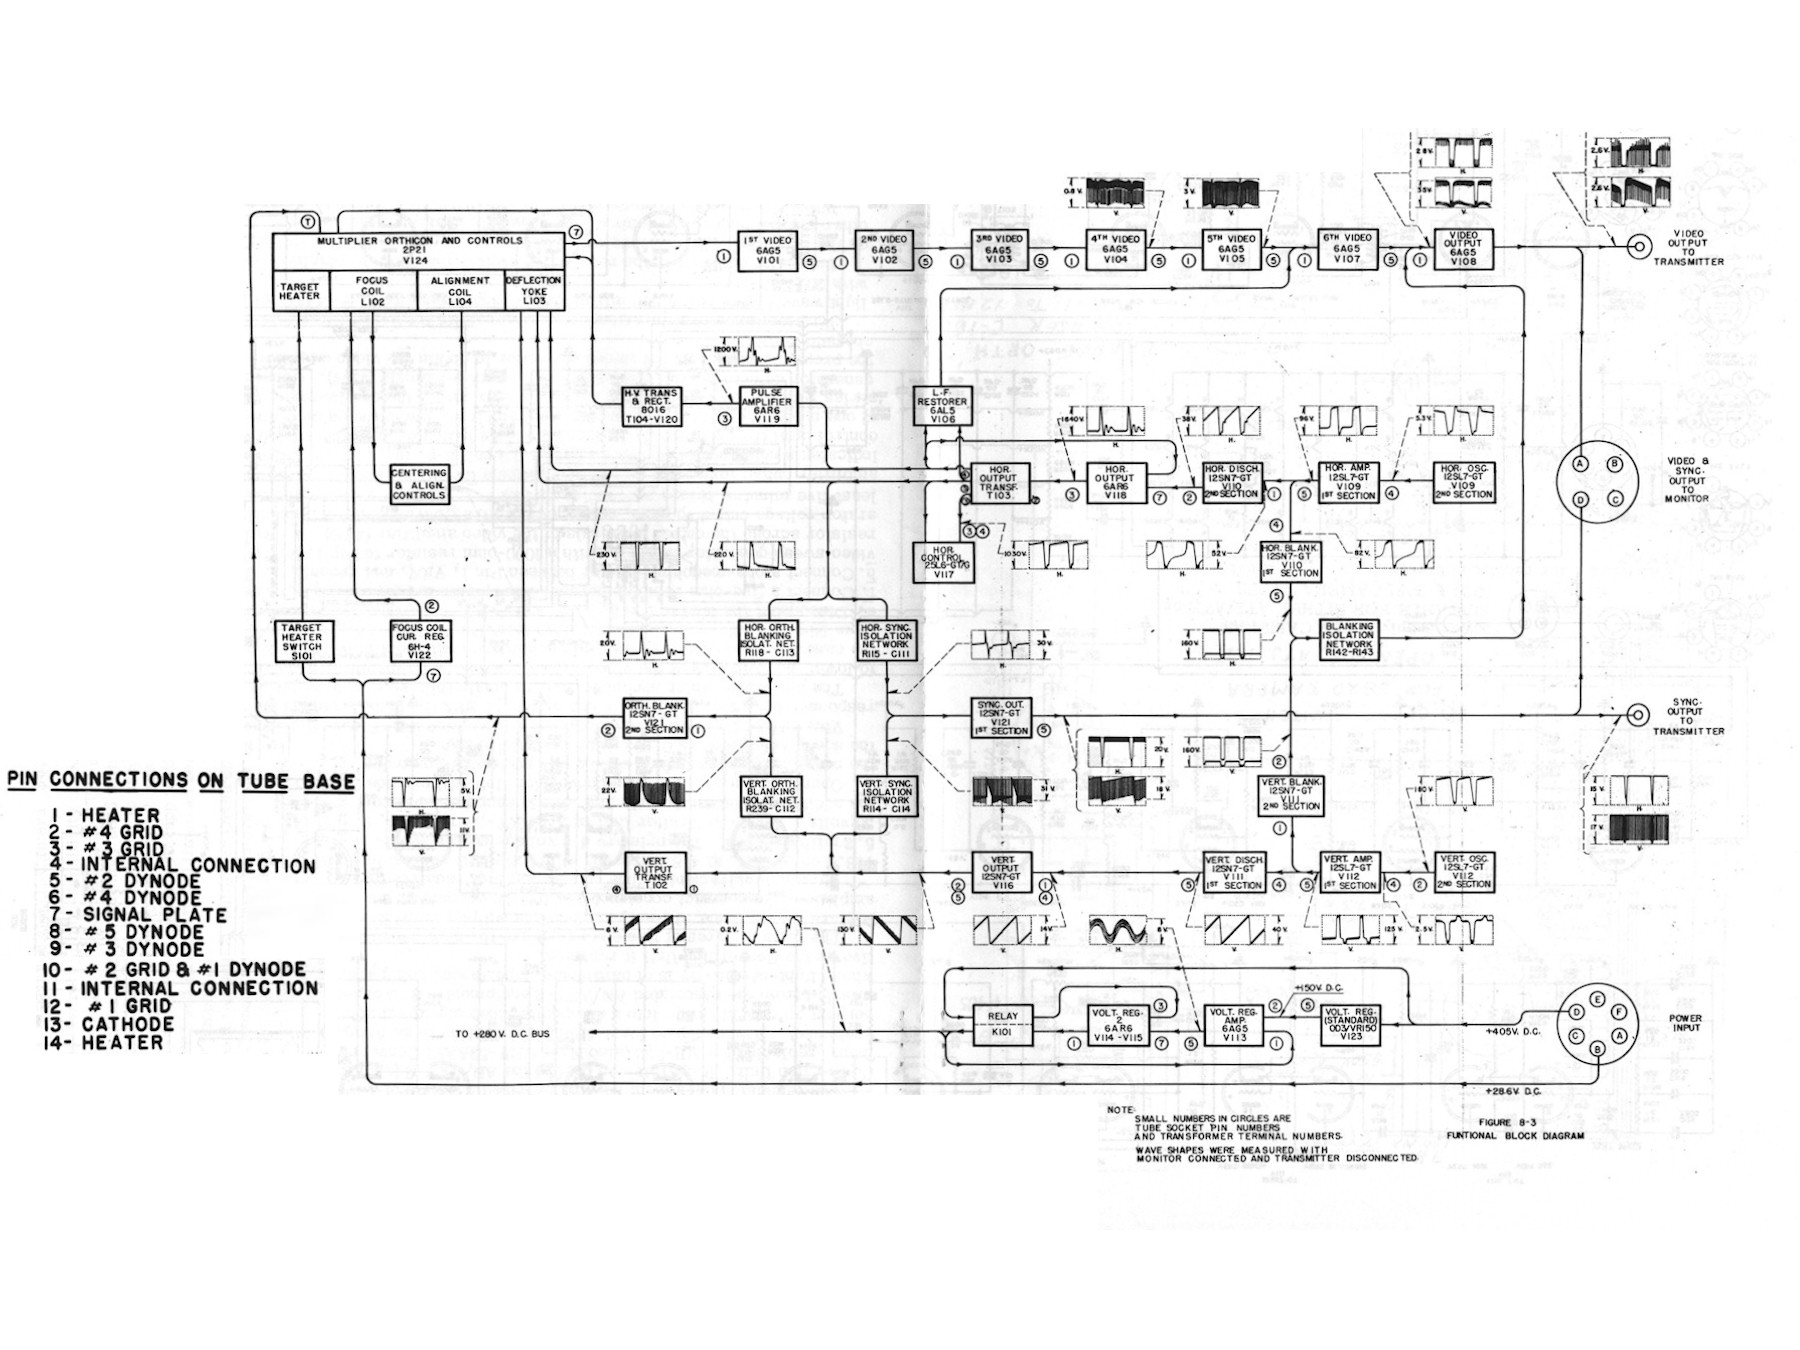 PH 548_084 labguy's world rca ph 548 axt 2a image orthicon tv camera GMC Factory Stereo Wiring Diagrams at webbmarketing.co